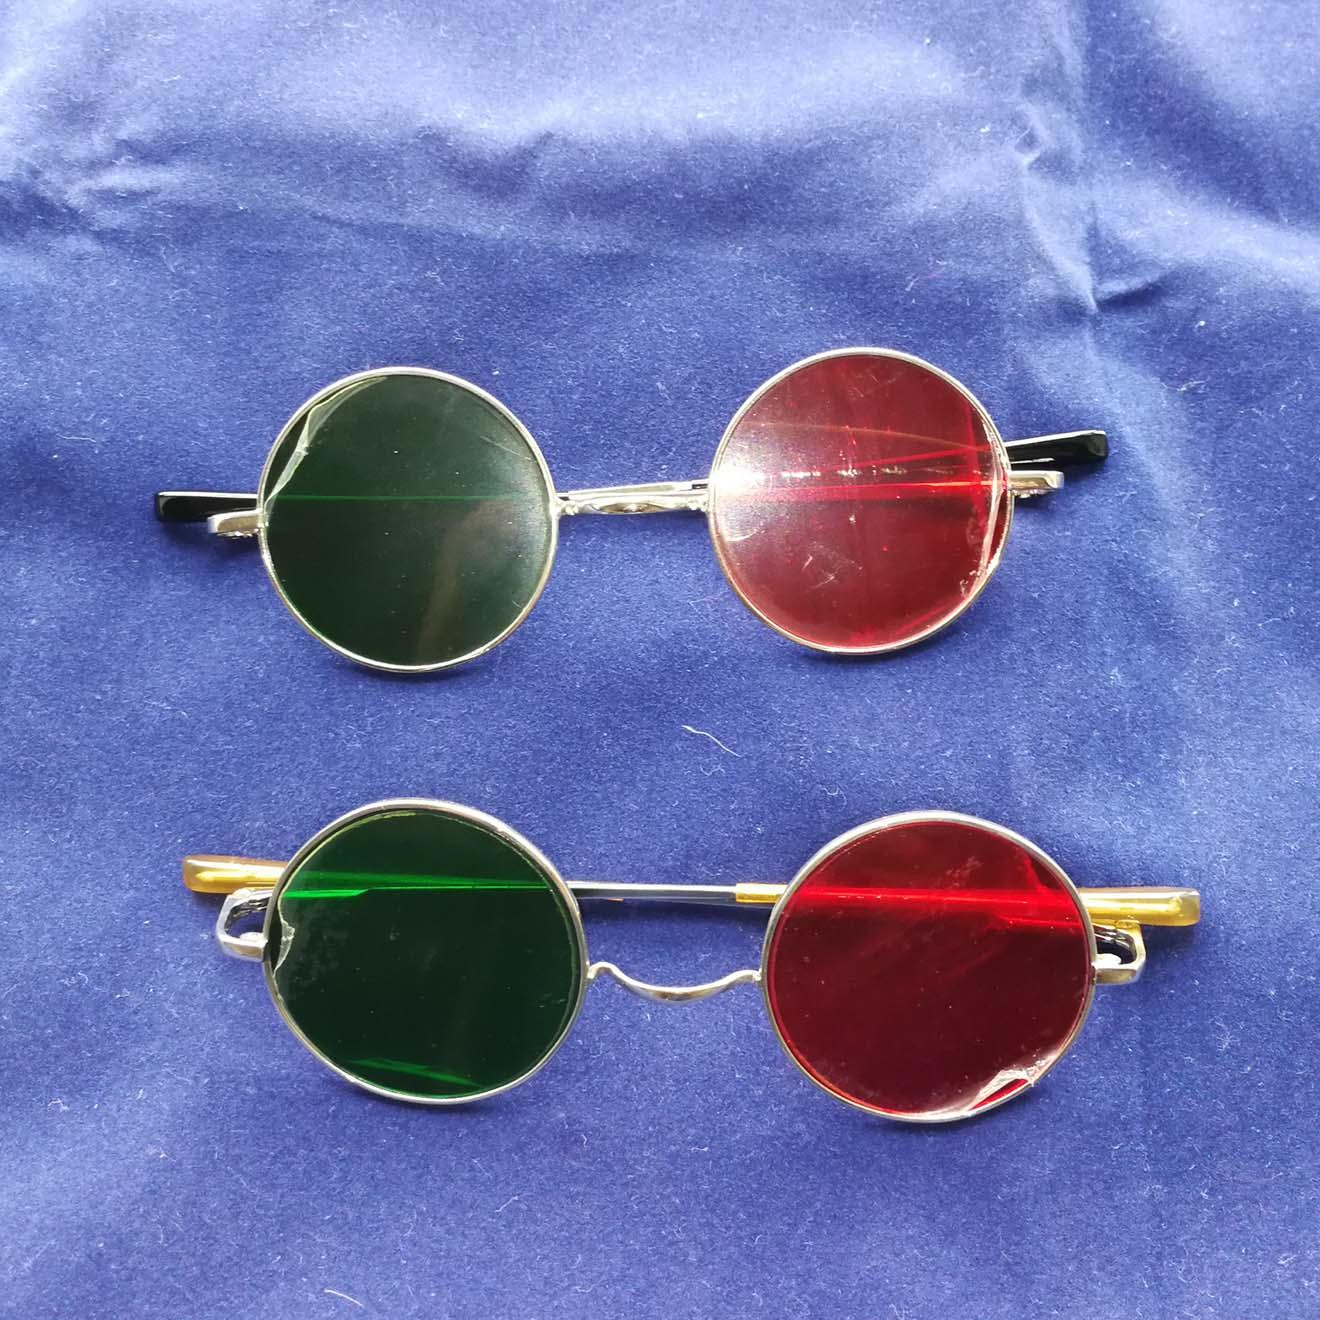 Red/Green spectacles